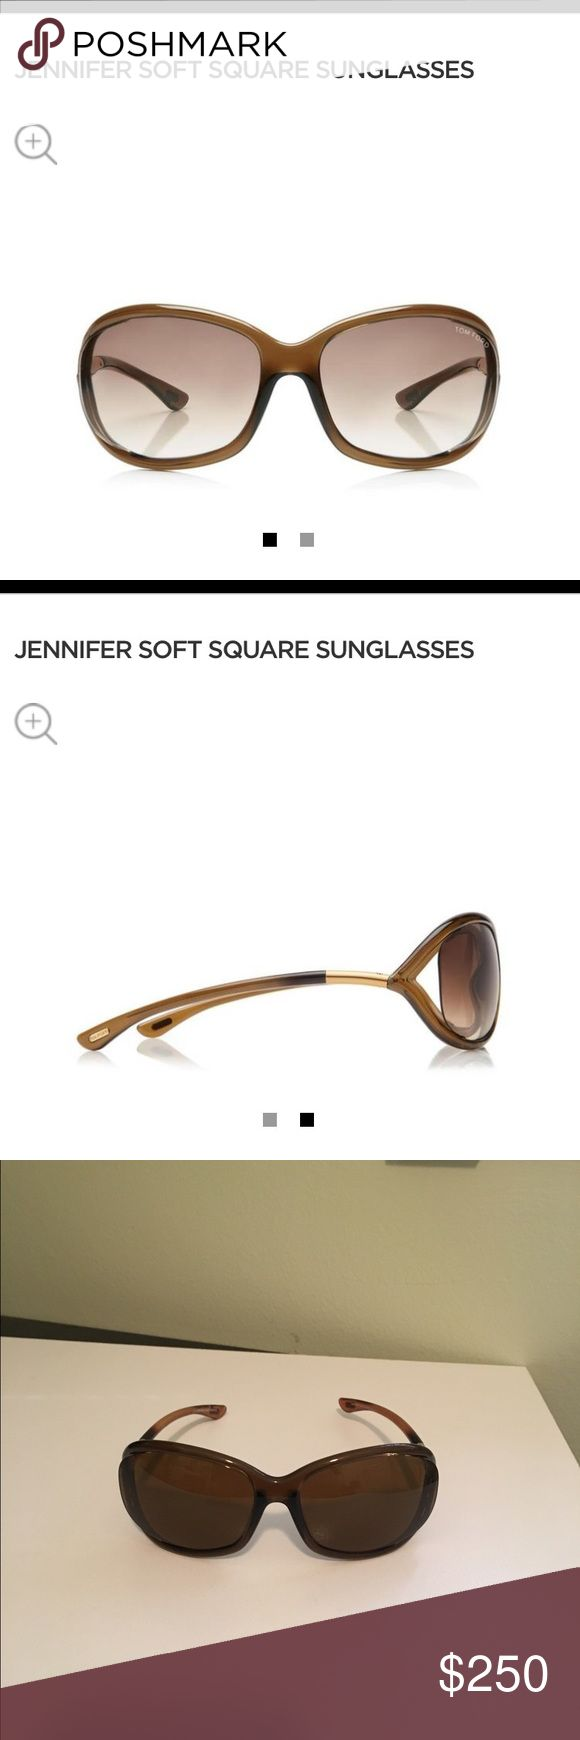 Tom Ford Jennifer Sunglasses Gently worn. Great condition. Polarized. Tom Ford Accessories Sunglasses